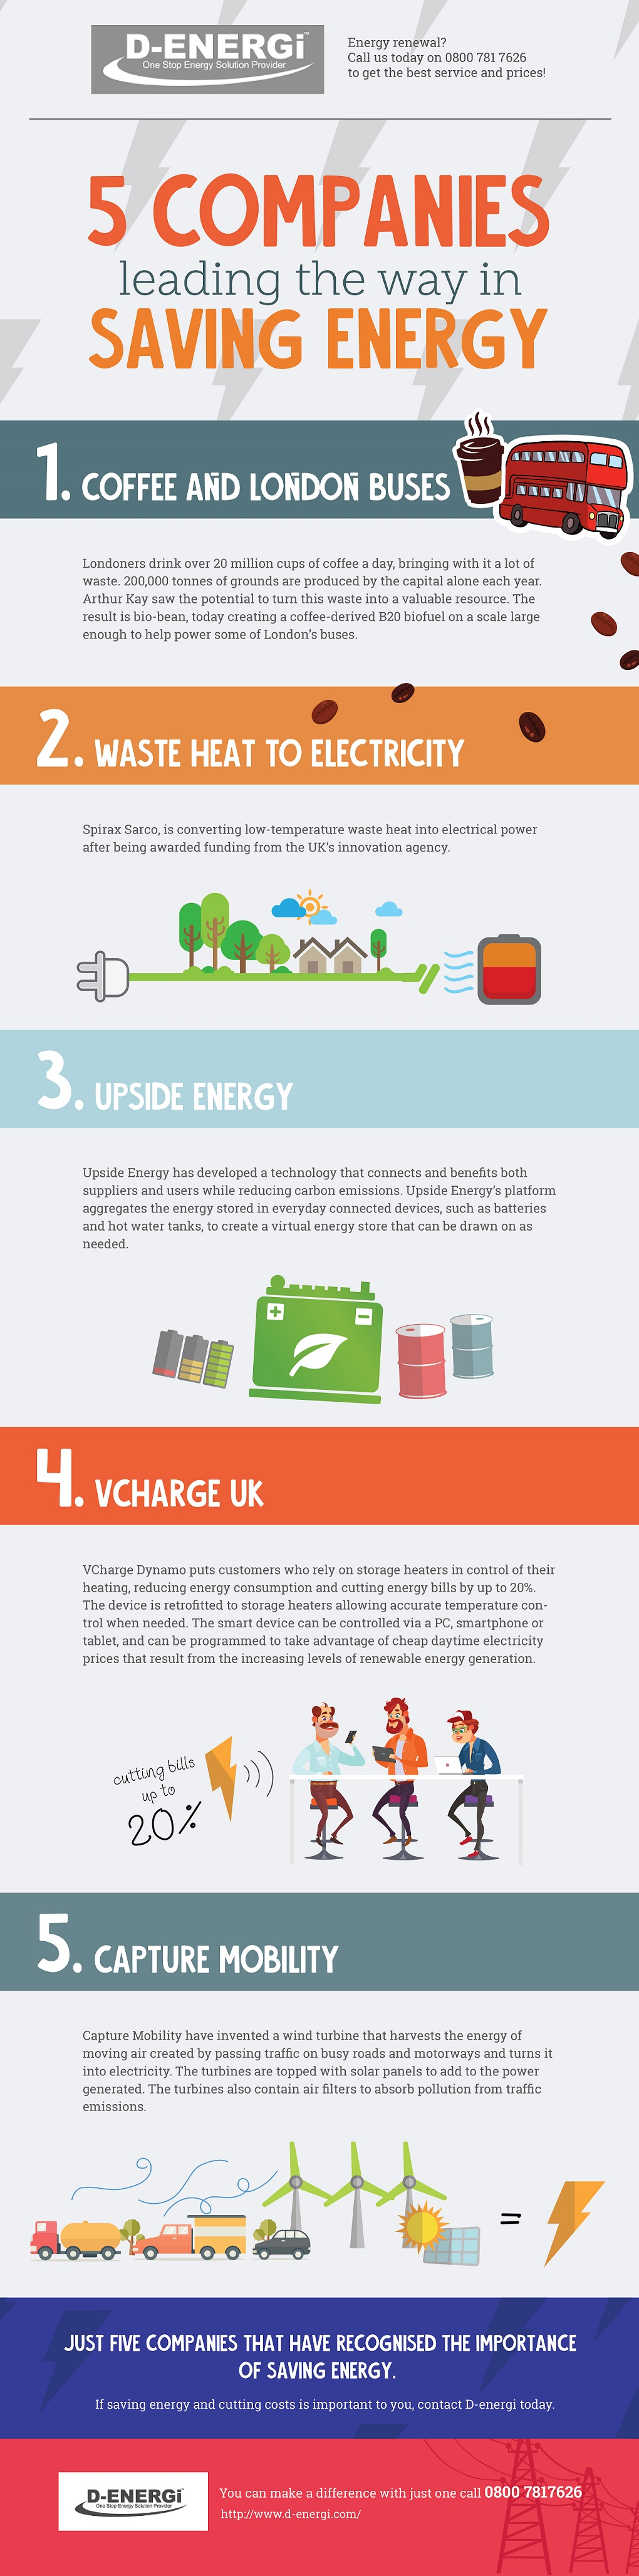 5 Companies Leading the way in Saving Energy Infographic